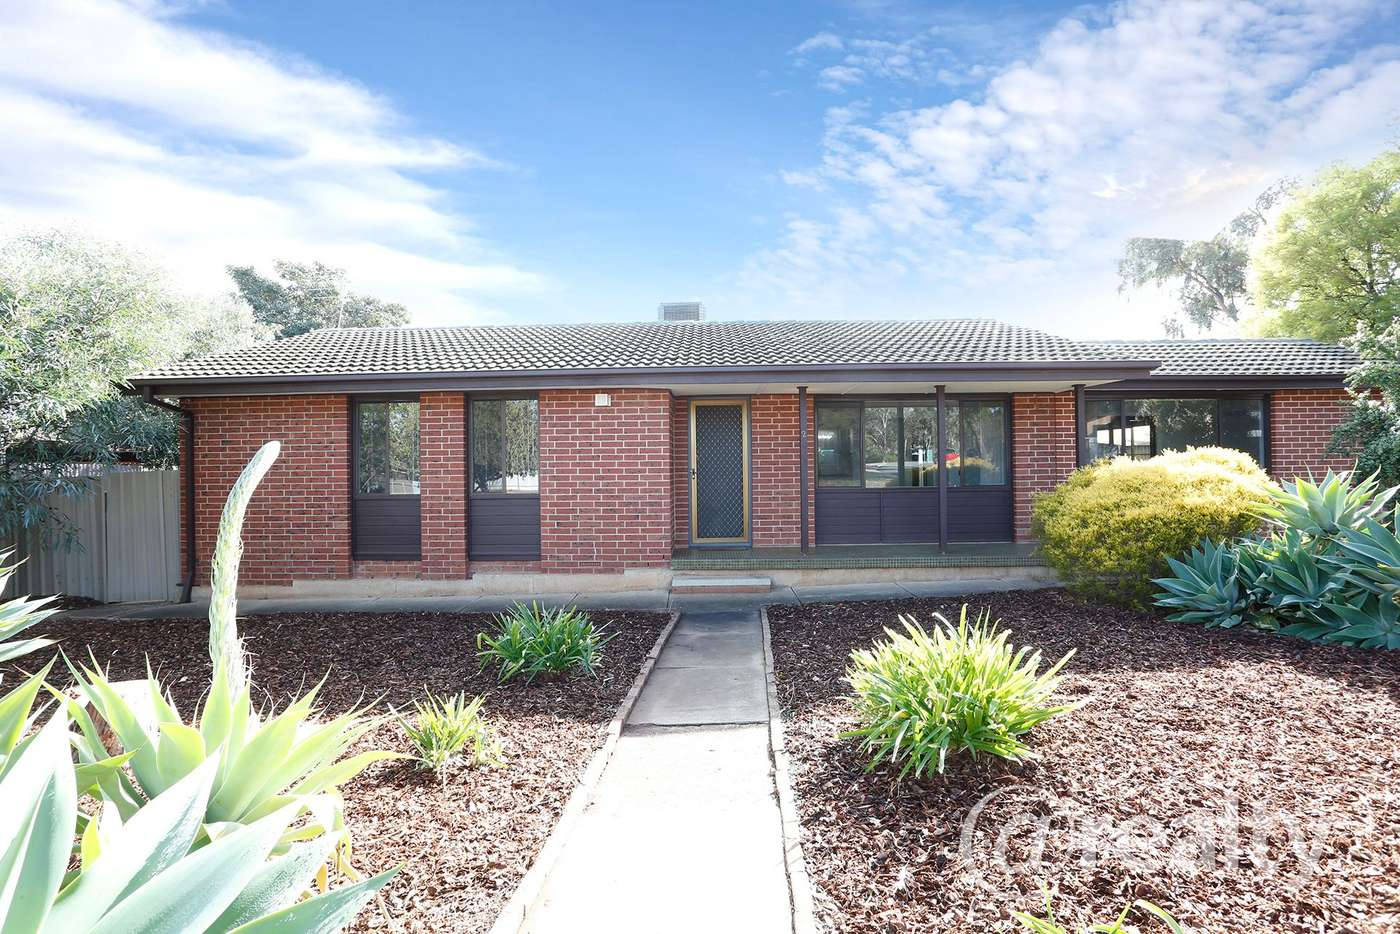 Main view of Homely house listing, 2 Paginton Crescent, Elizabeth East SA 5112